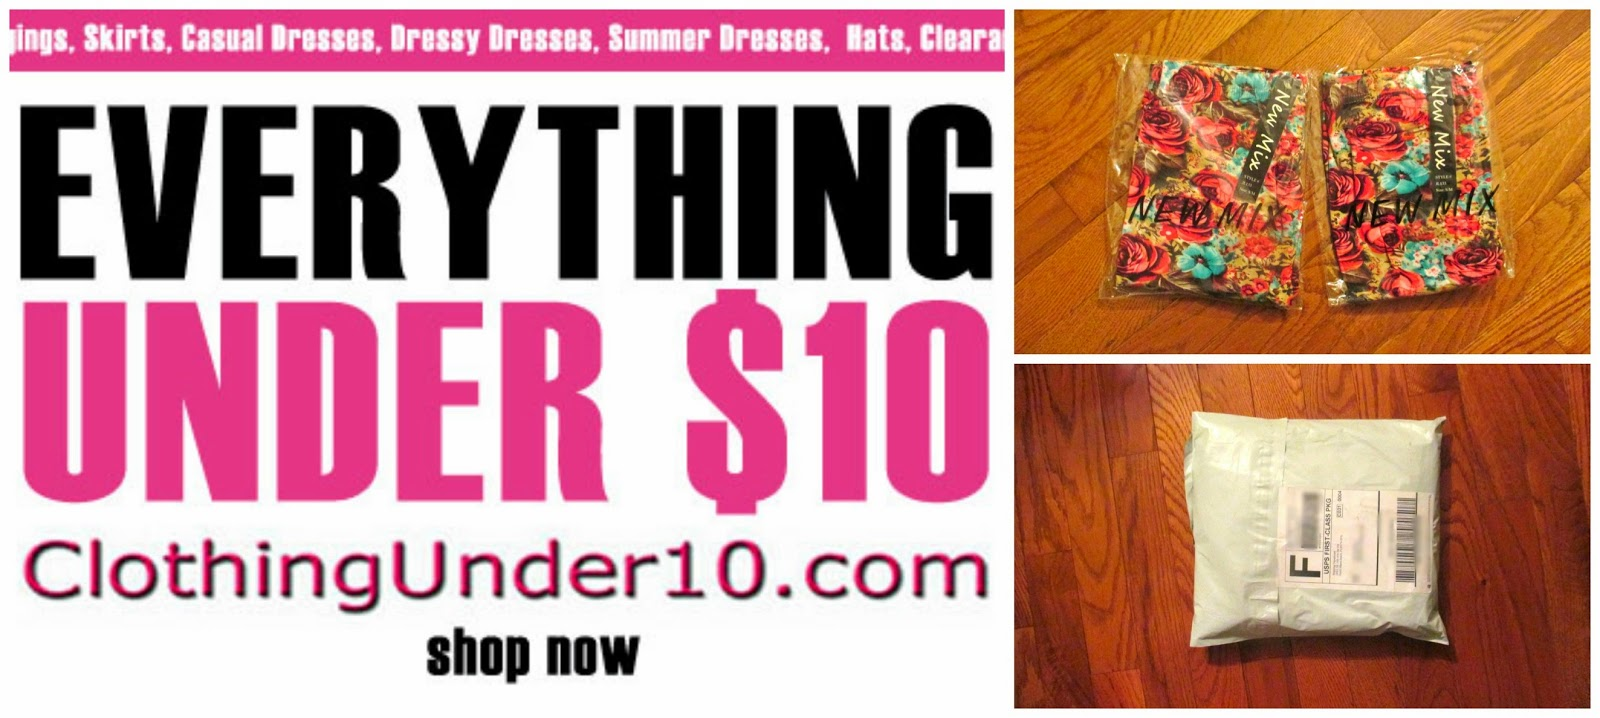 clothingunder10.com review,clothing under 10